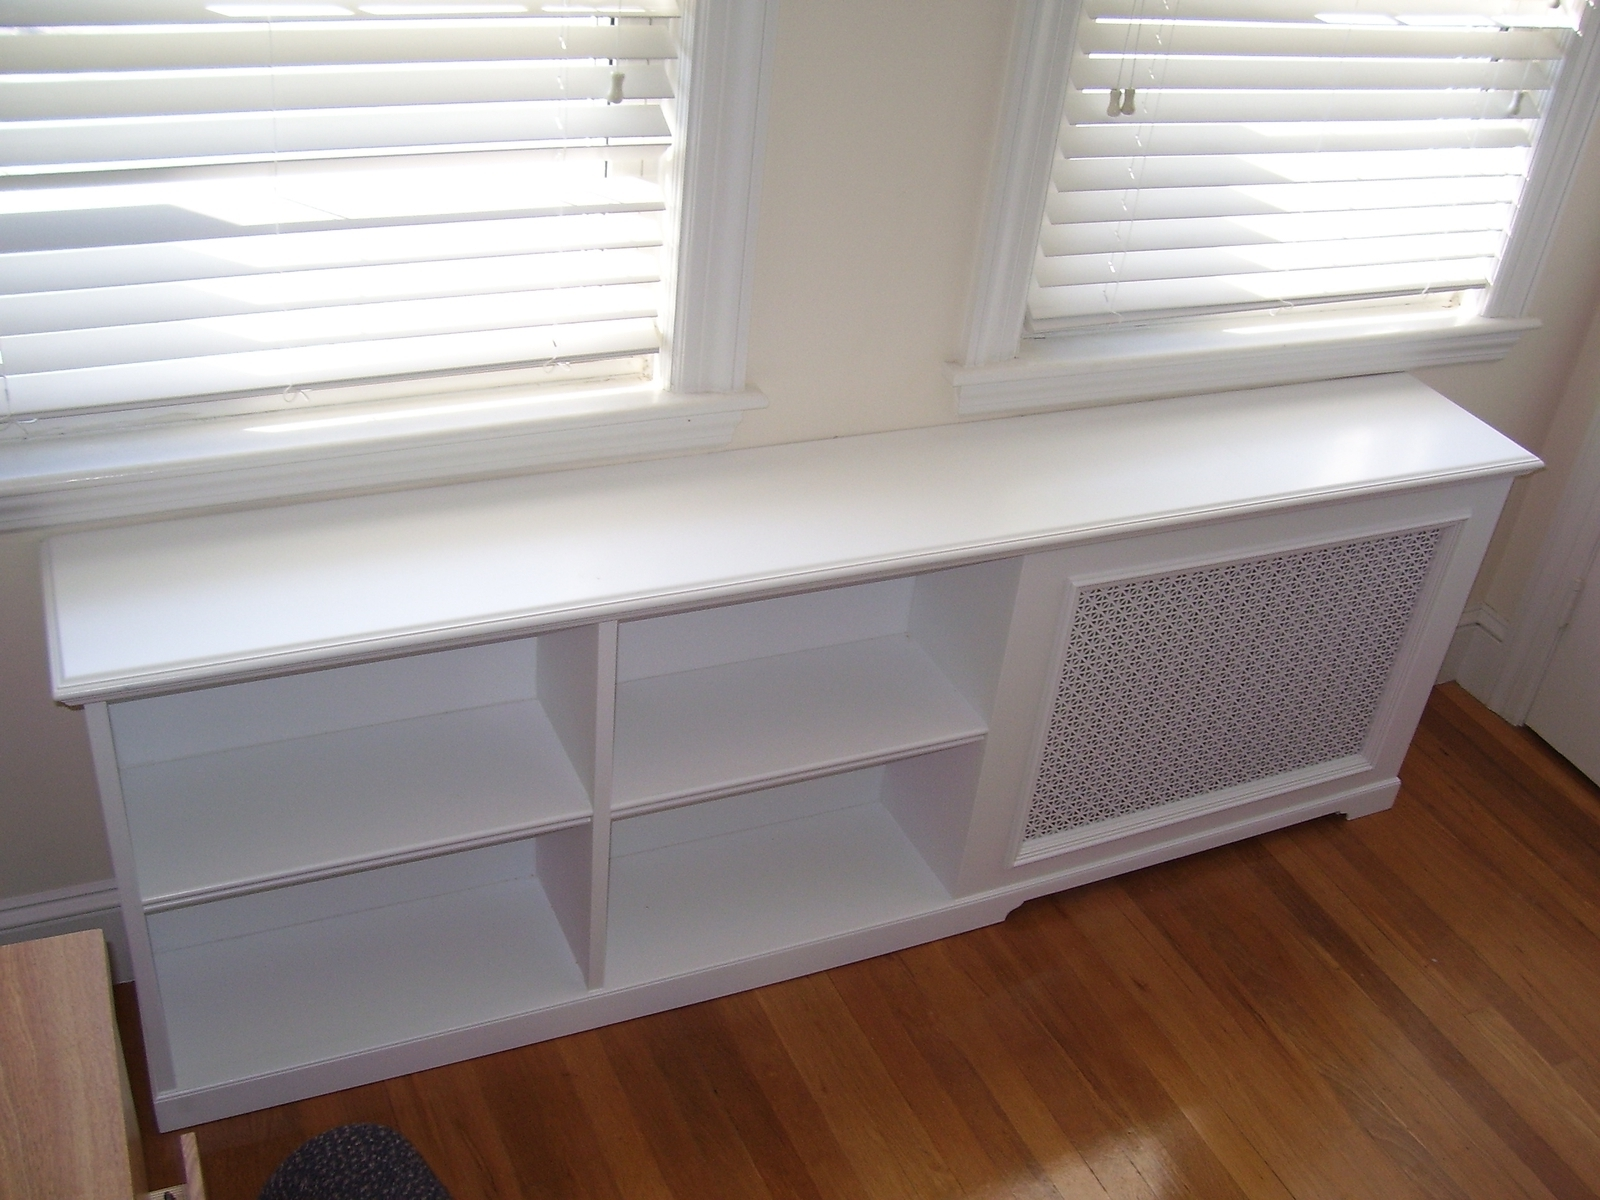 Radiator Cover Shelf Unit Regarding Current Custom Radiator Covers (View 11 of 15)